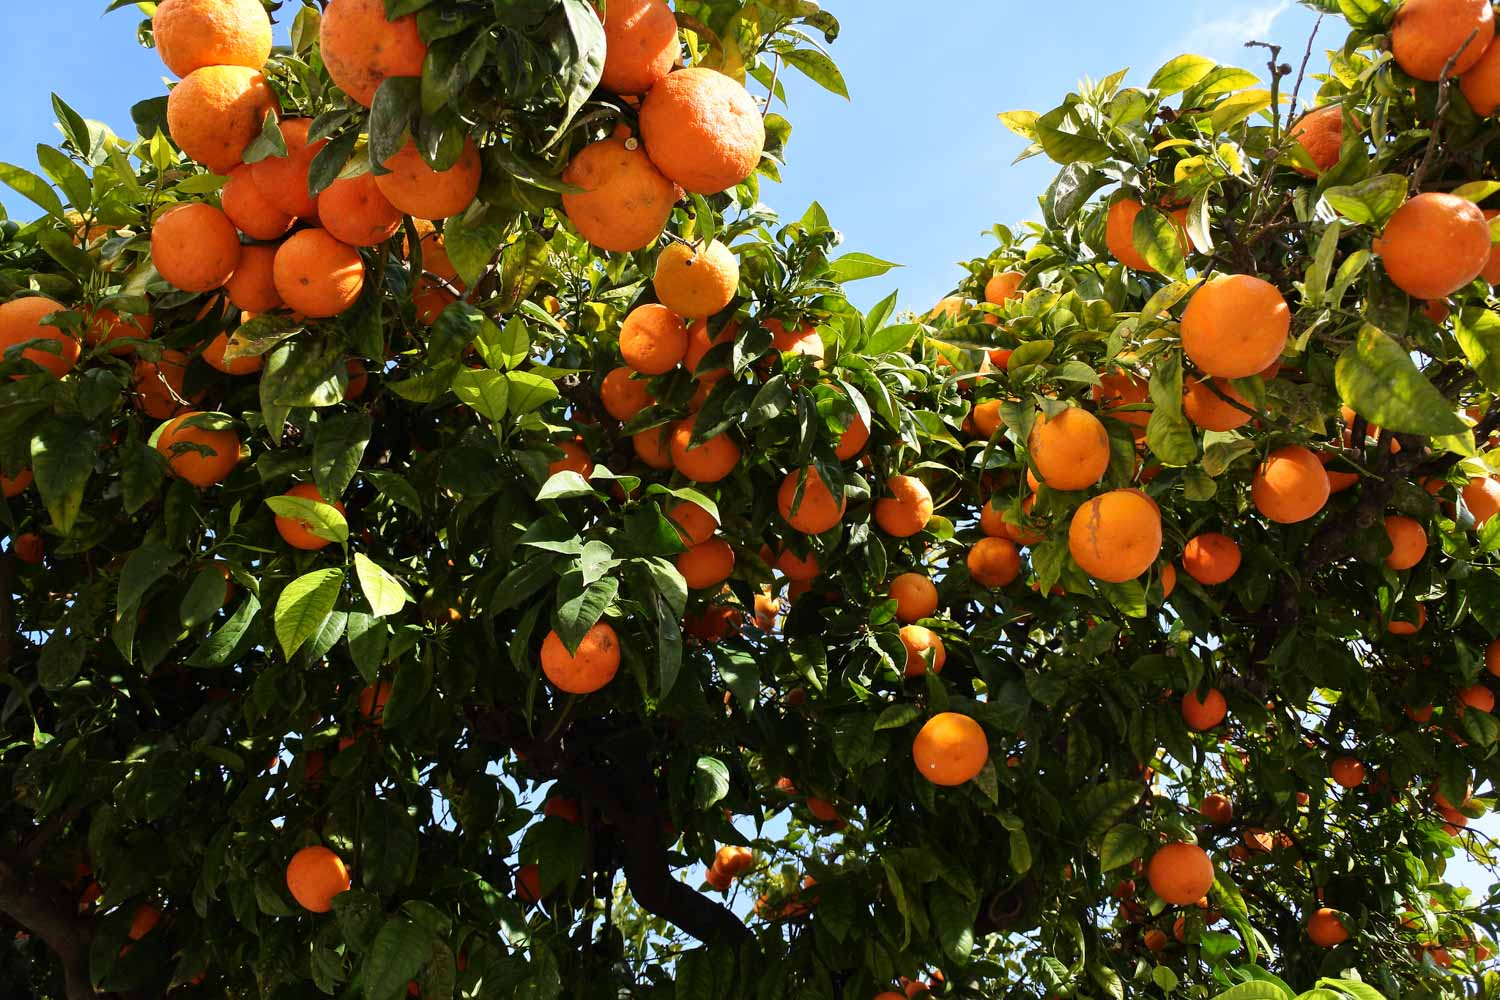 Jamaican fruit known as sour orange growing on a tree.